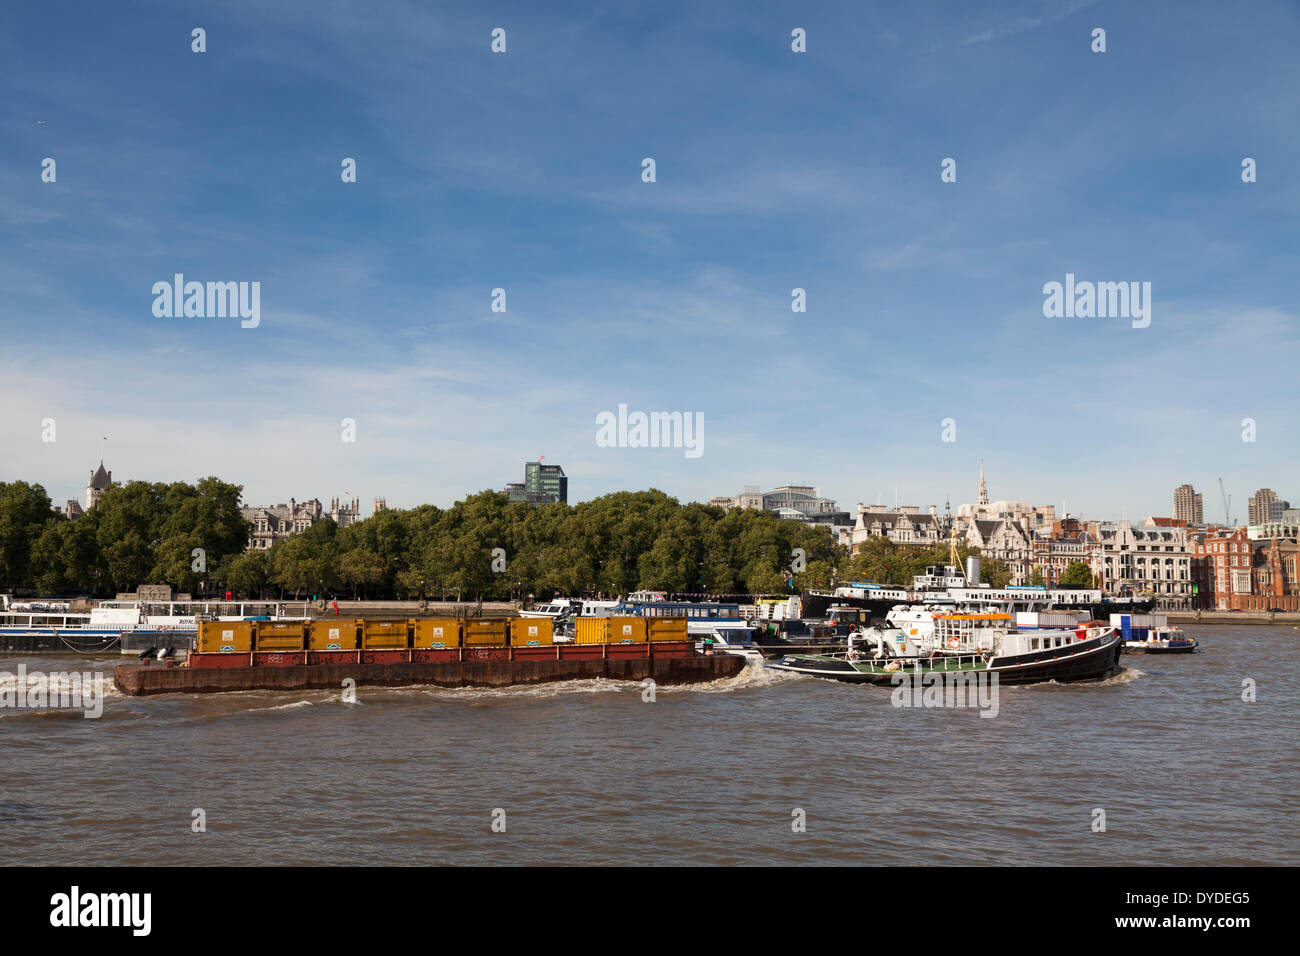 Transport barge of containers being towed down the River Thames. - Stock Image